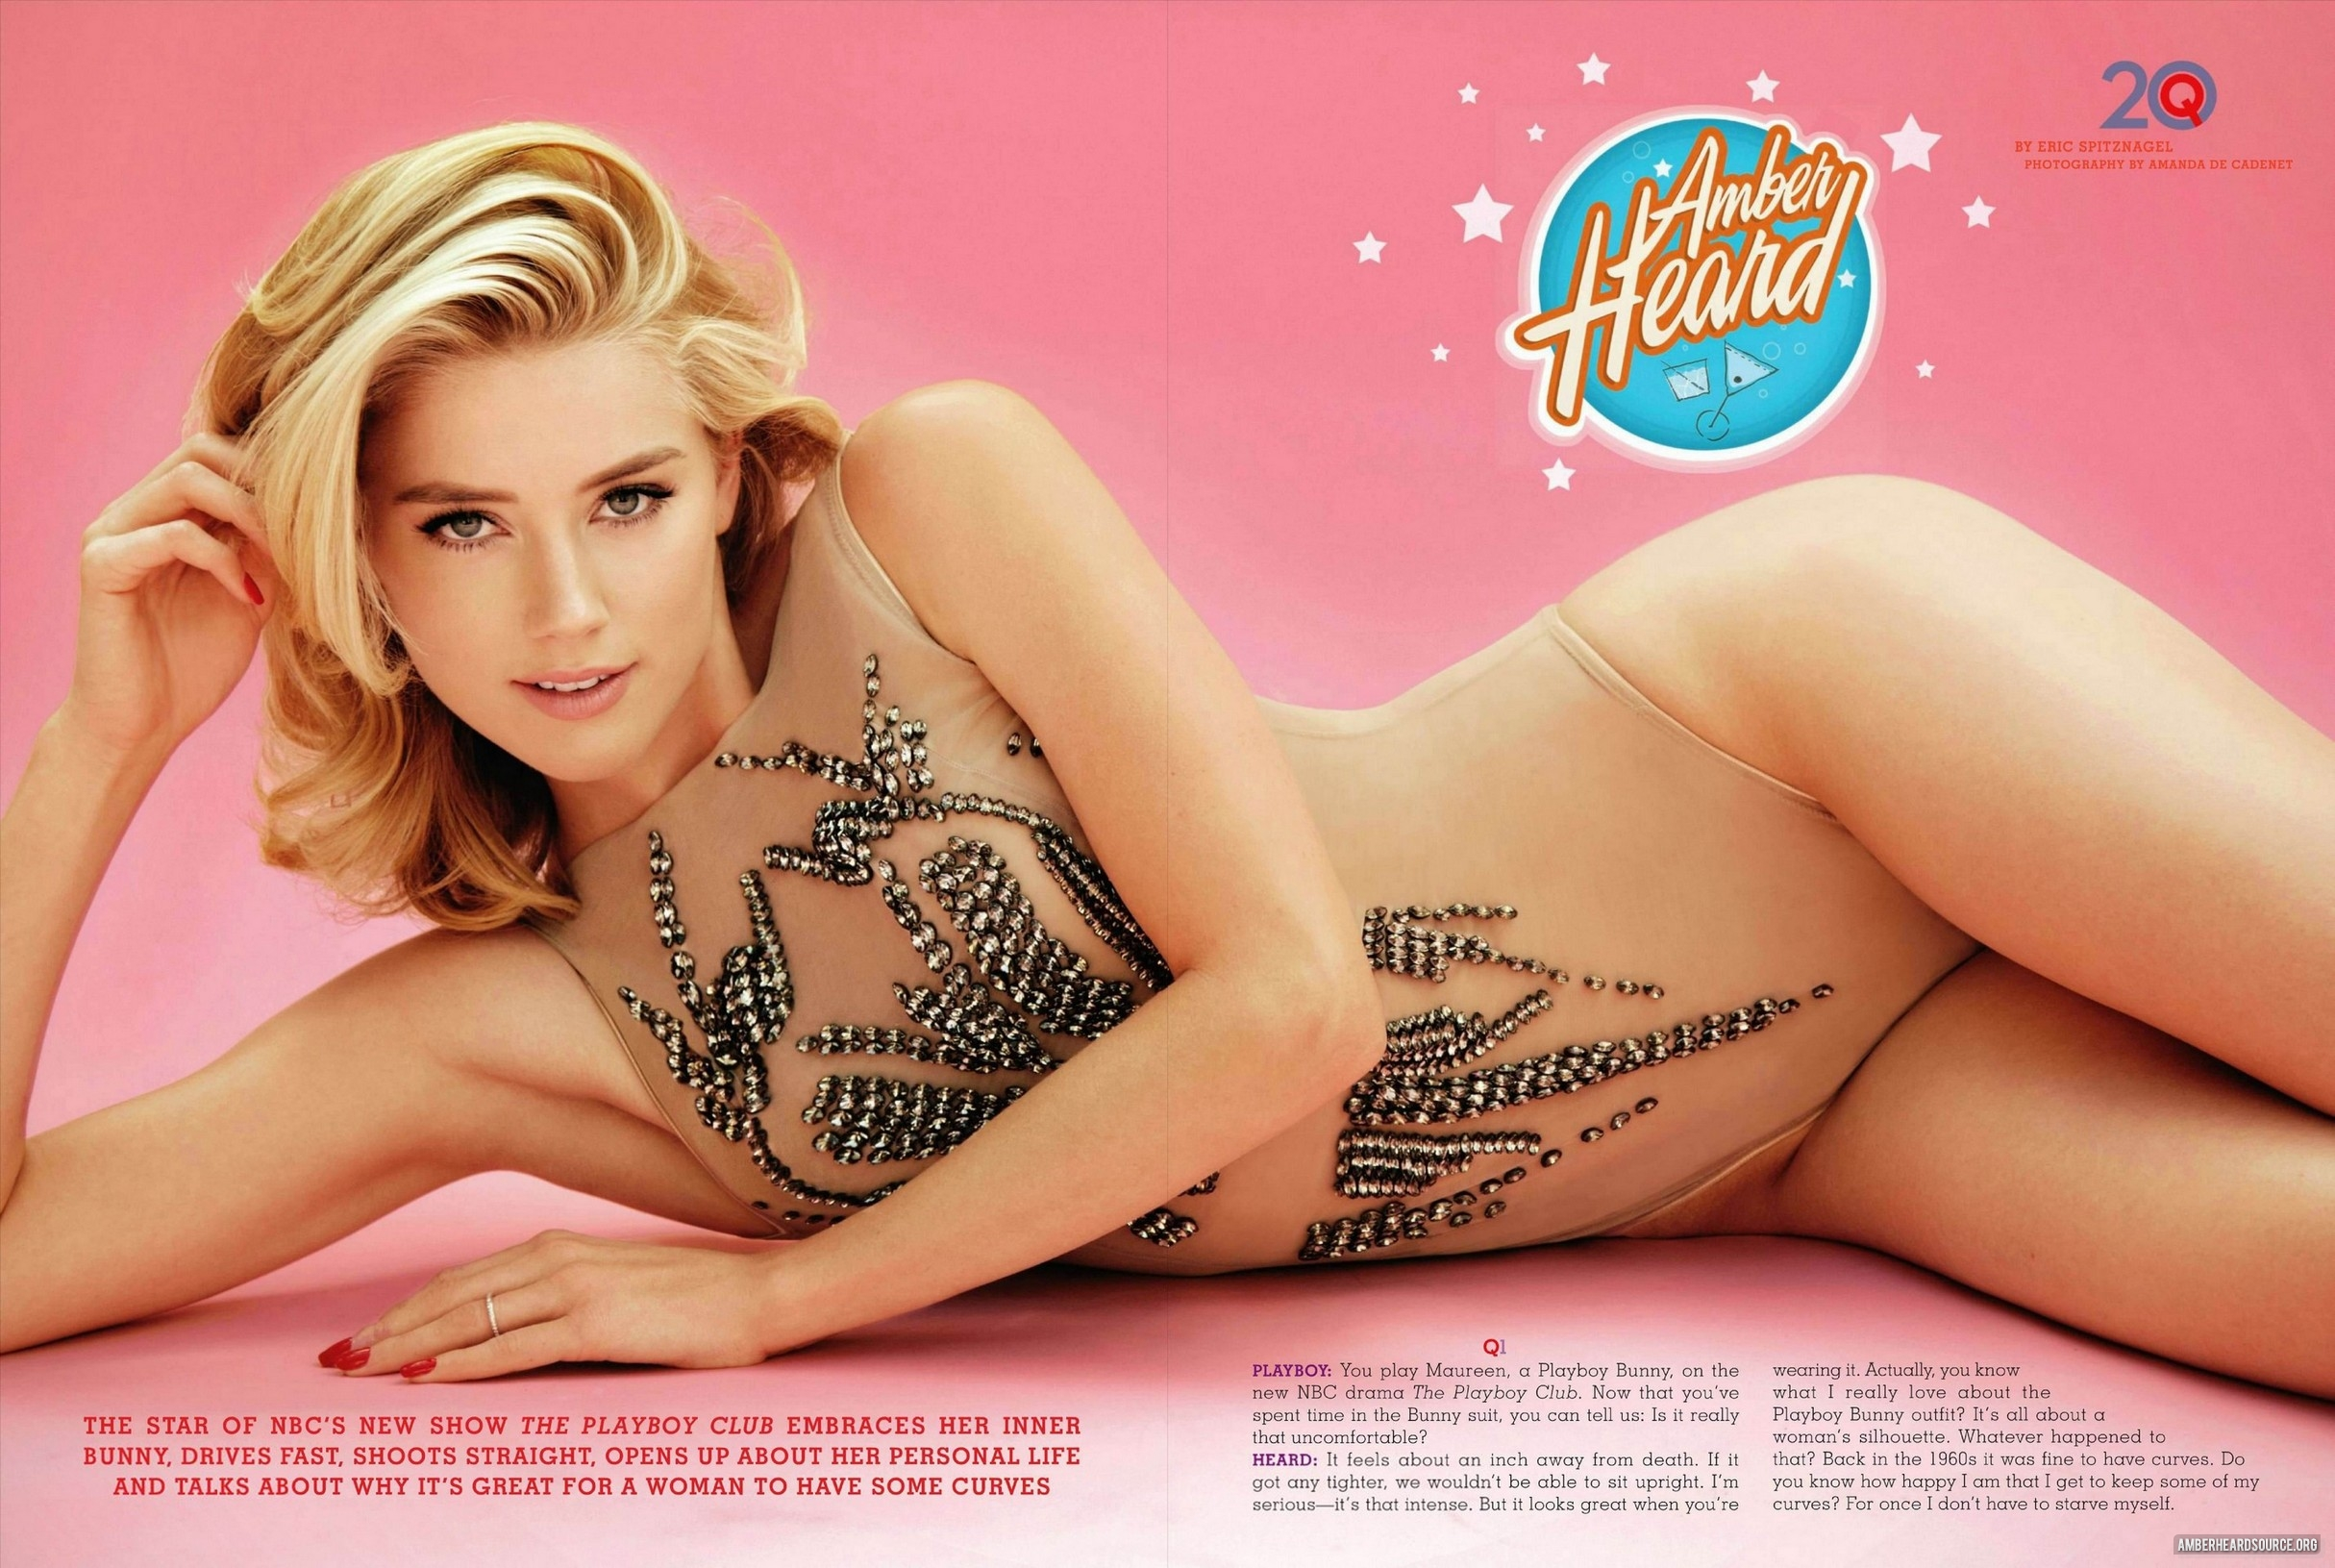 Amber Heard Nue editorial: playboy - september issue - amber heard photo